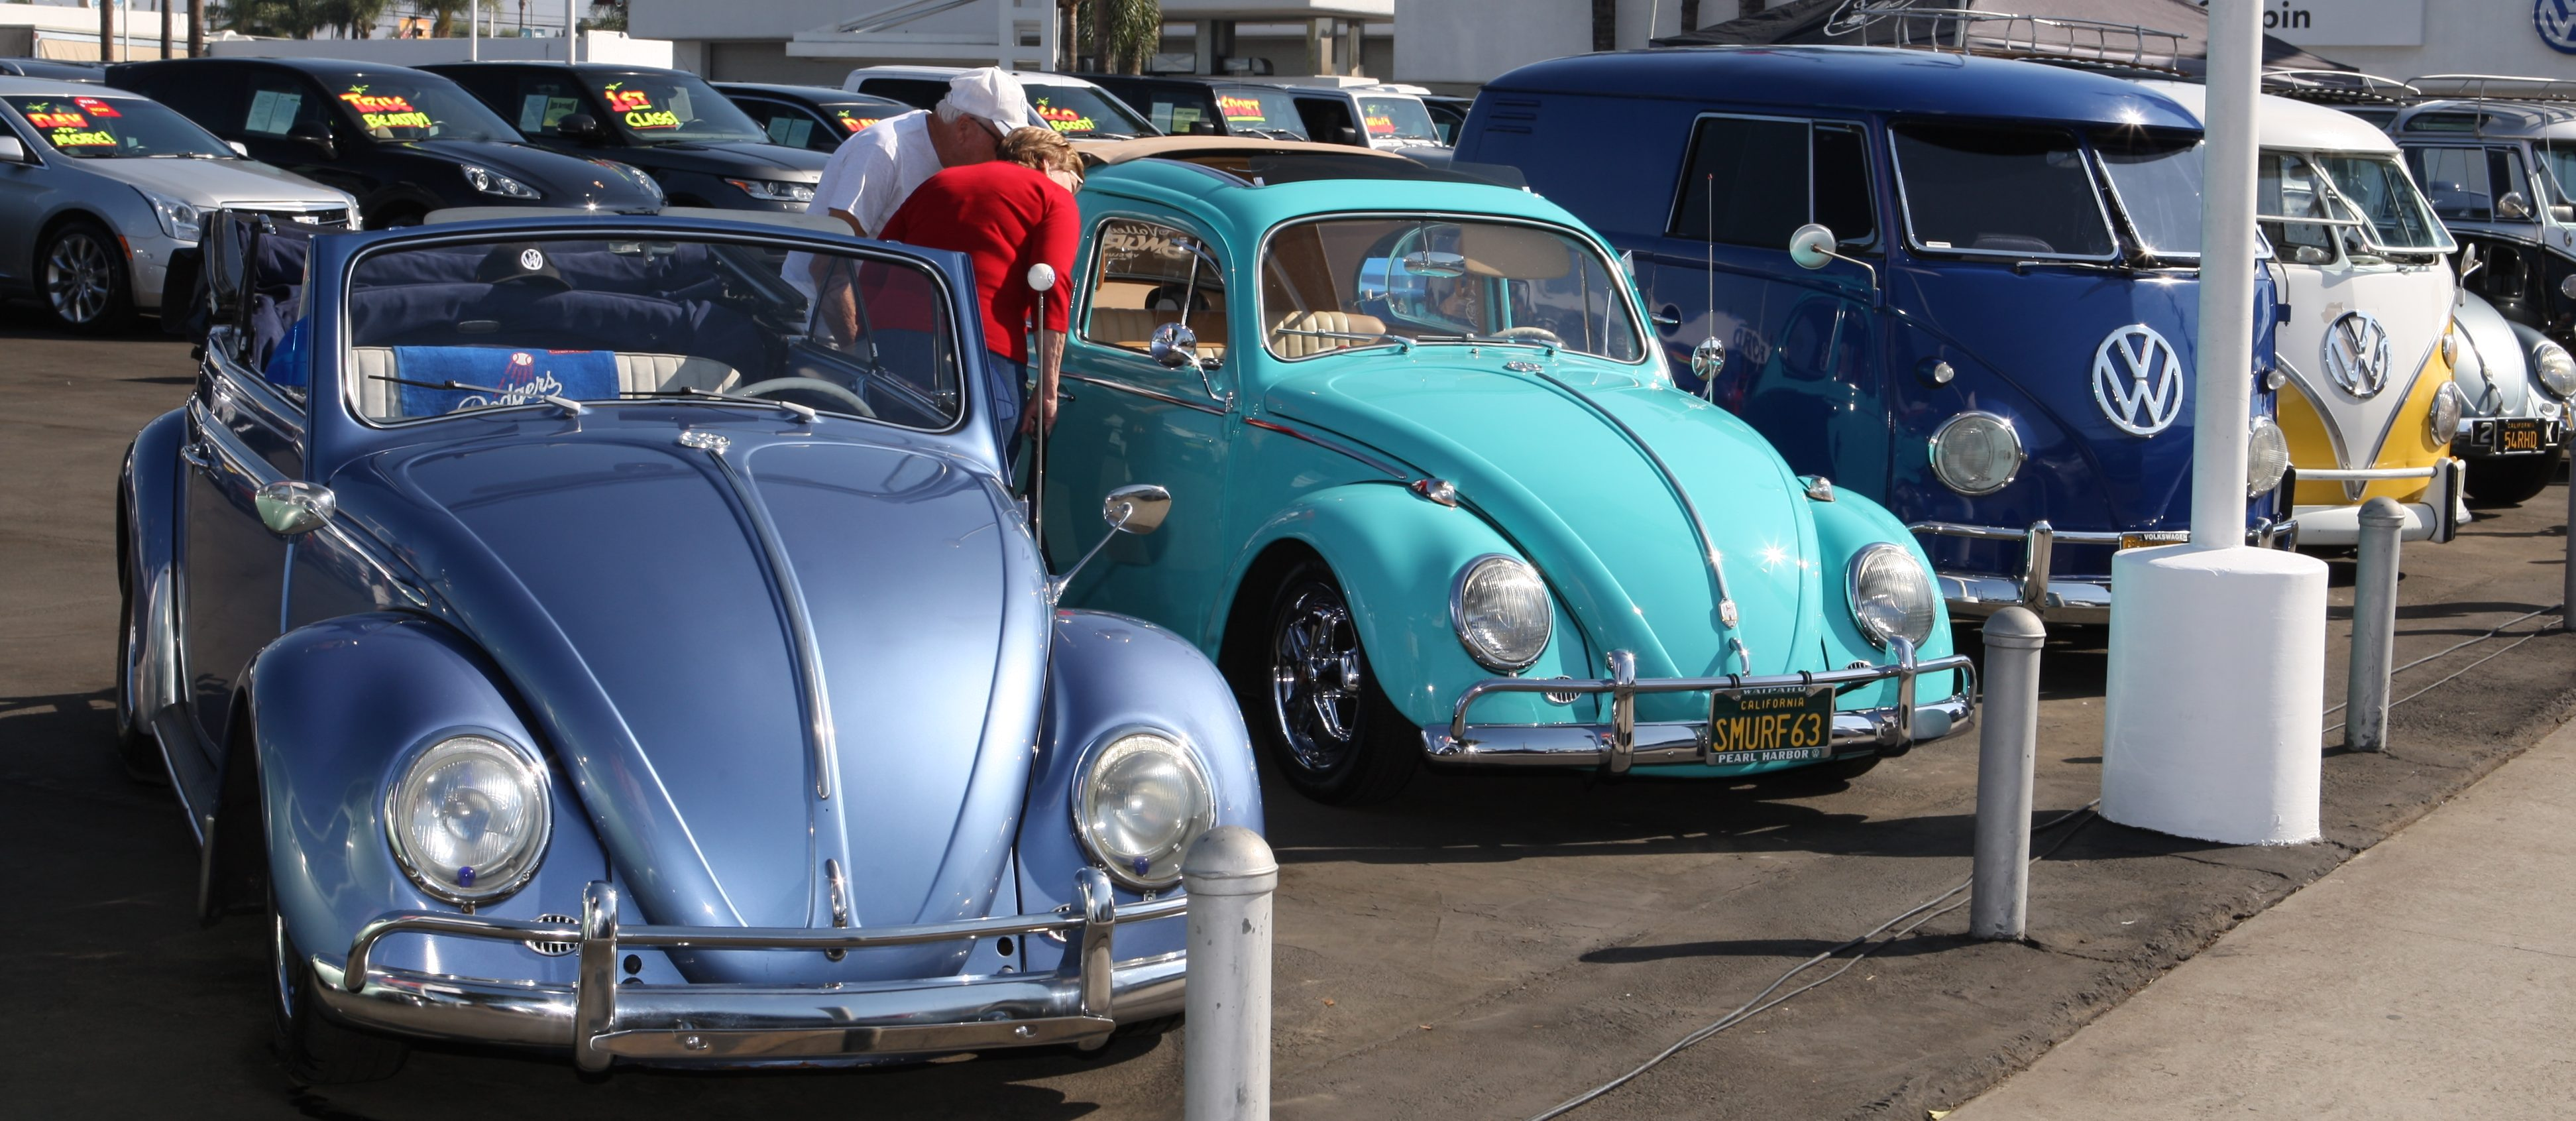 Image of Car show